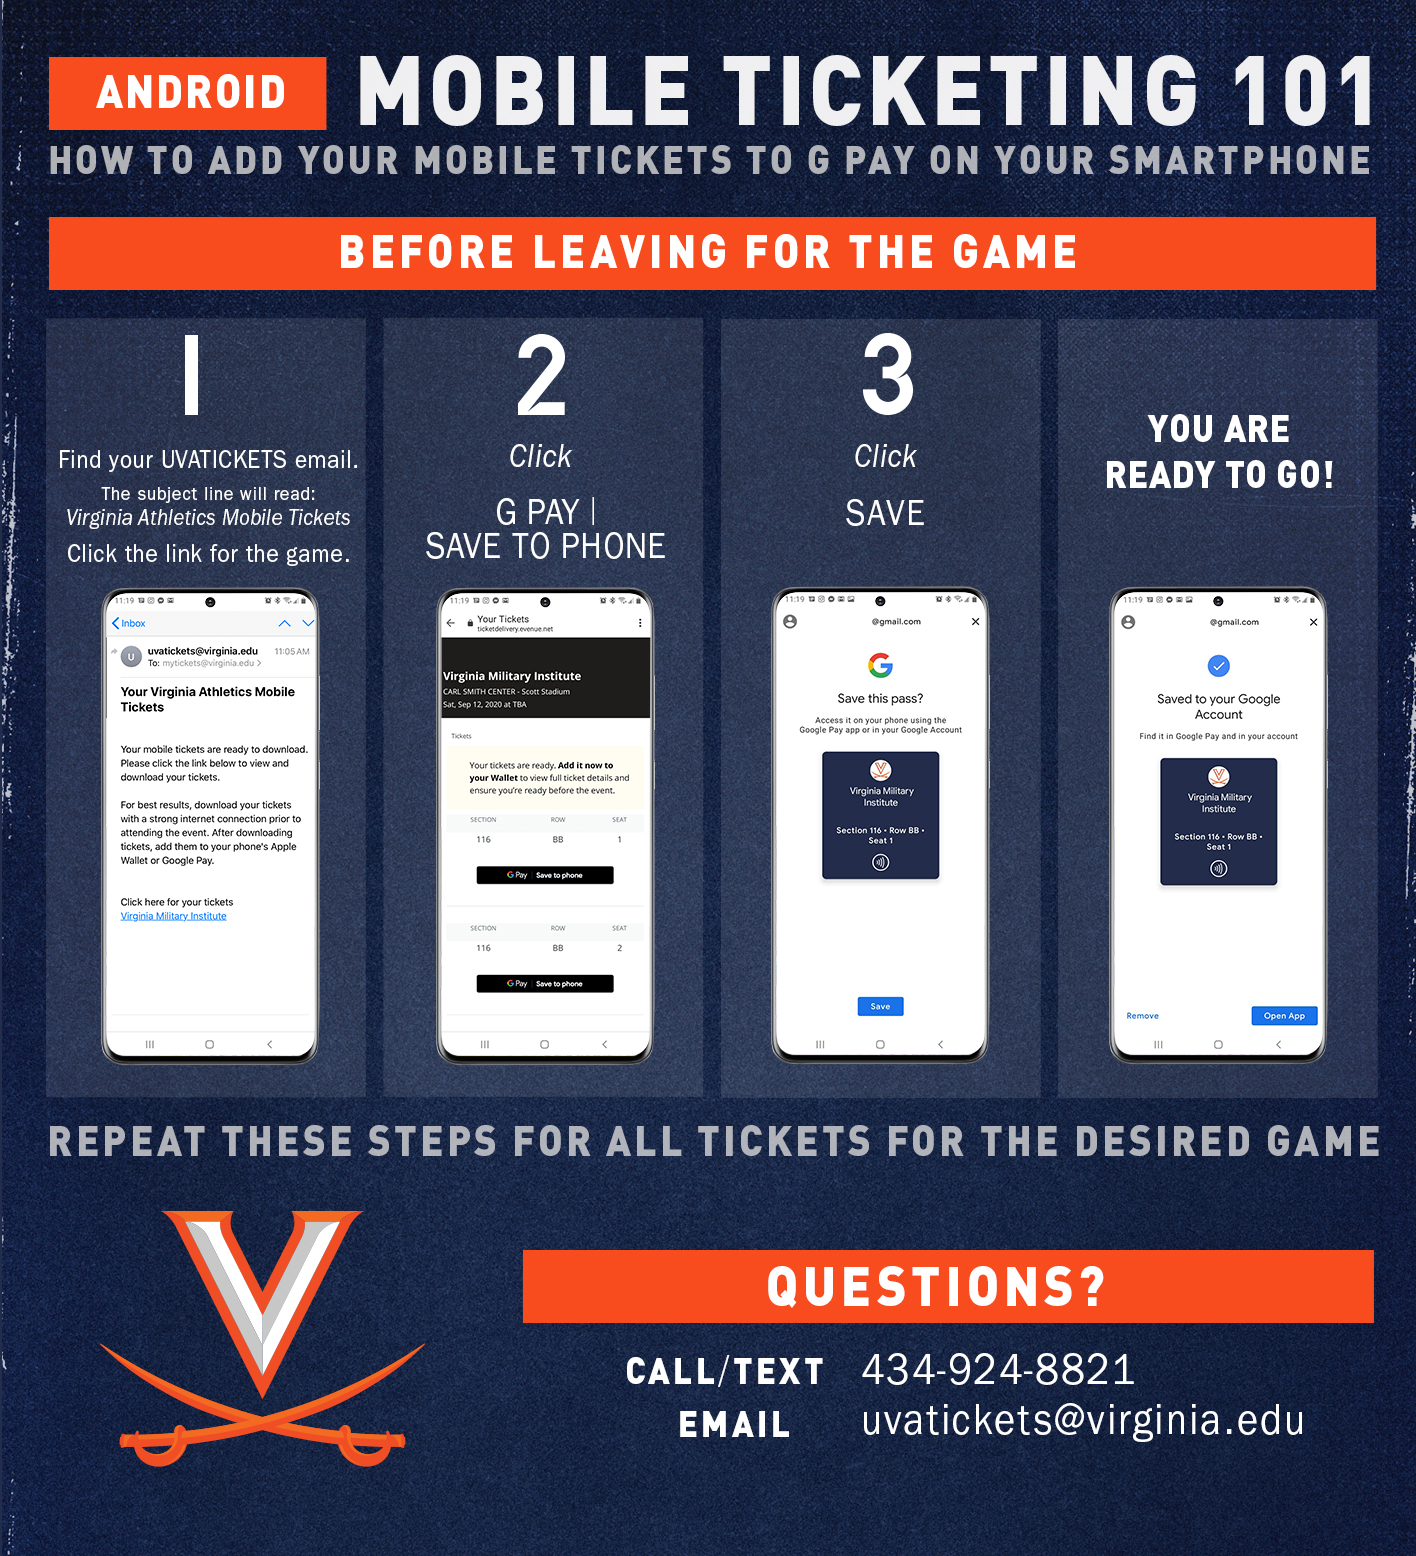 Mobile ticketing instructions for Android users